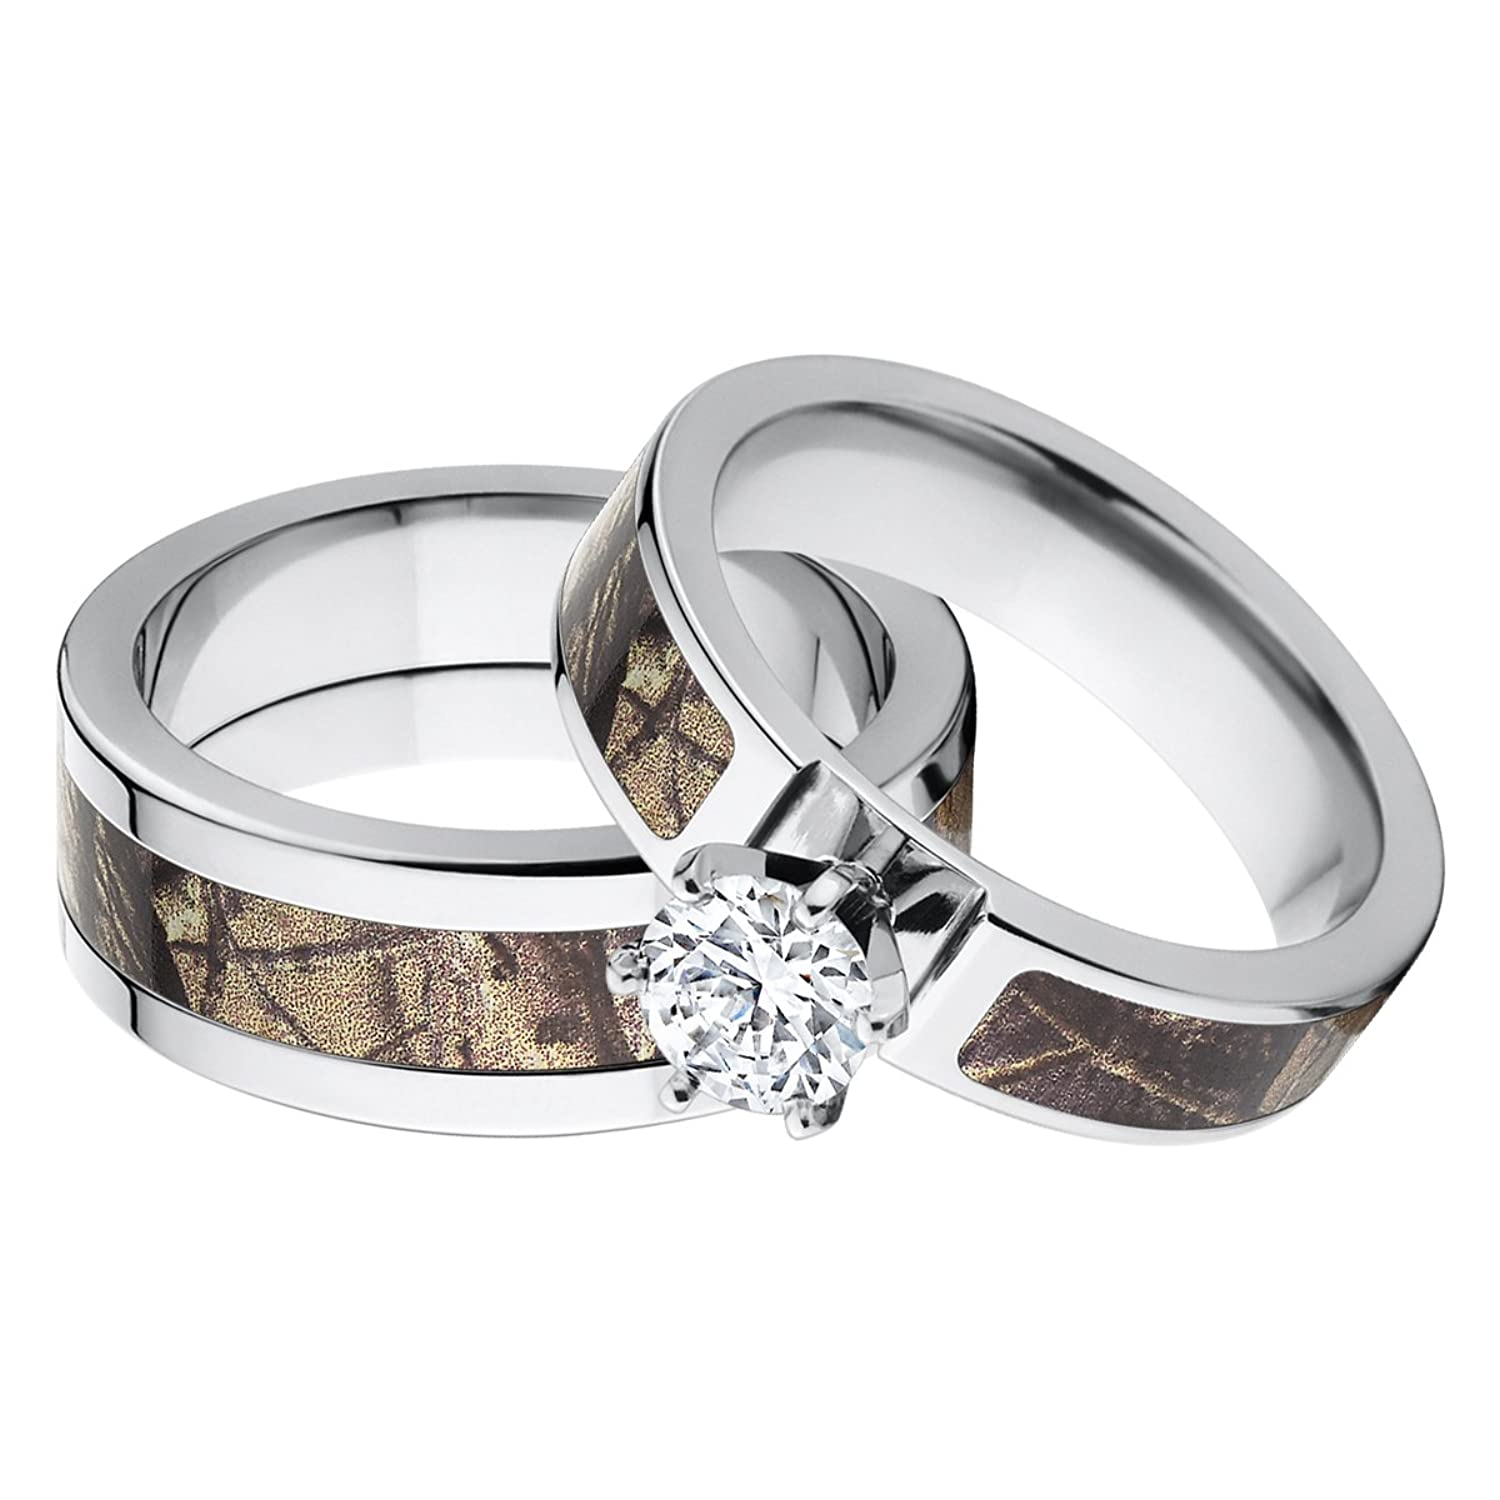 amazoncom his and hers matching realtree ap camouflage wedding ring set jewelry - Wedding Rings For Her And Him